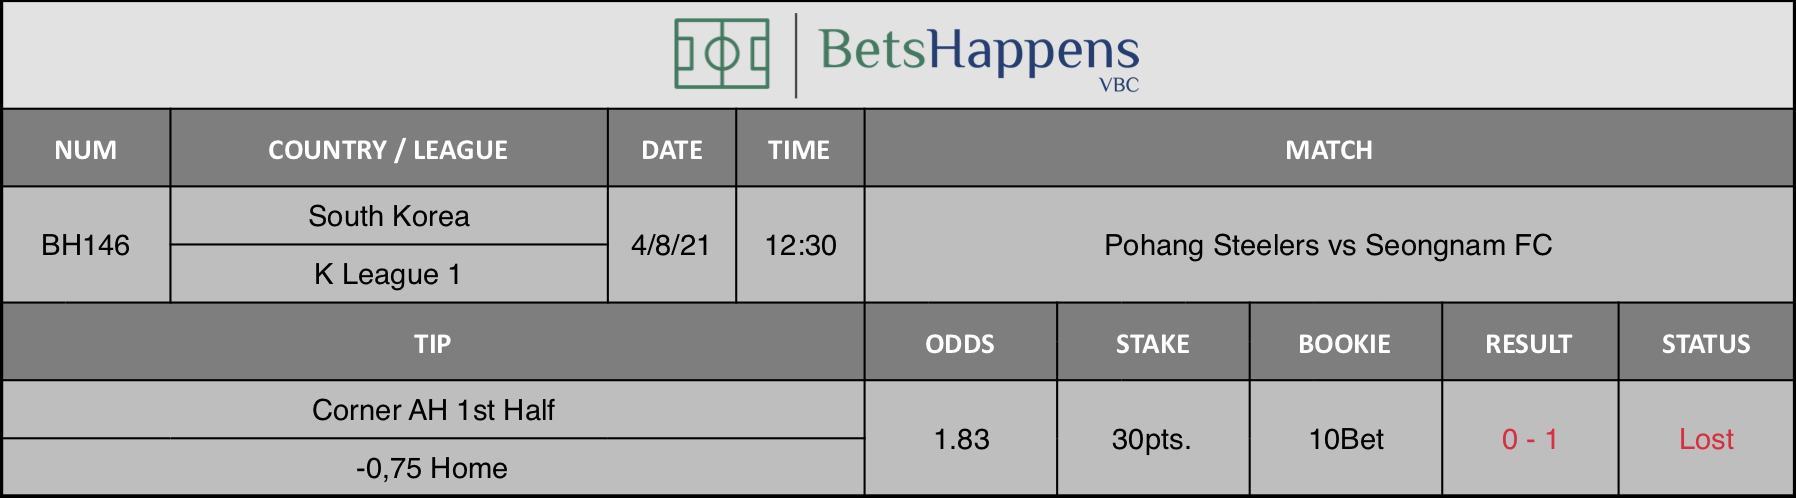 Results of our advice for the Pohang Steelers vs Seongnam FC match in which Corner AH 1st Half -0,75 Home is recommended.